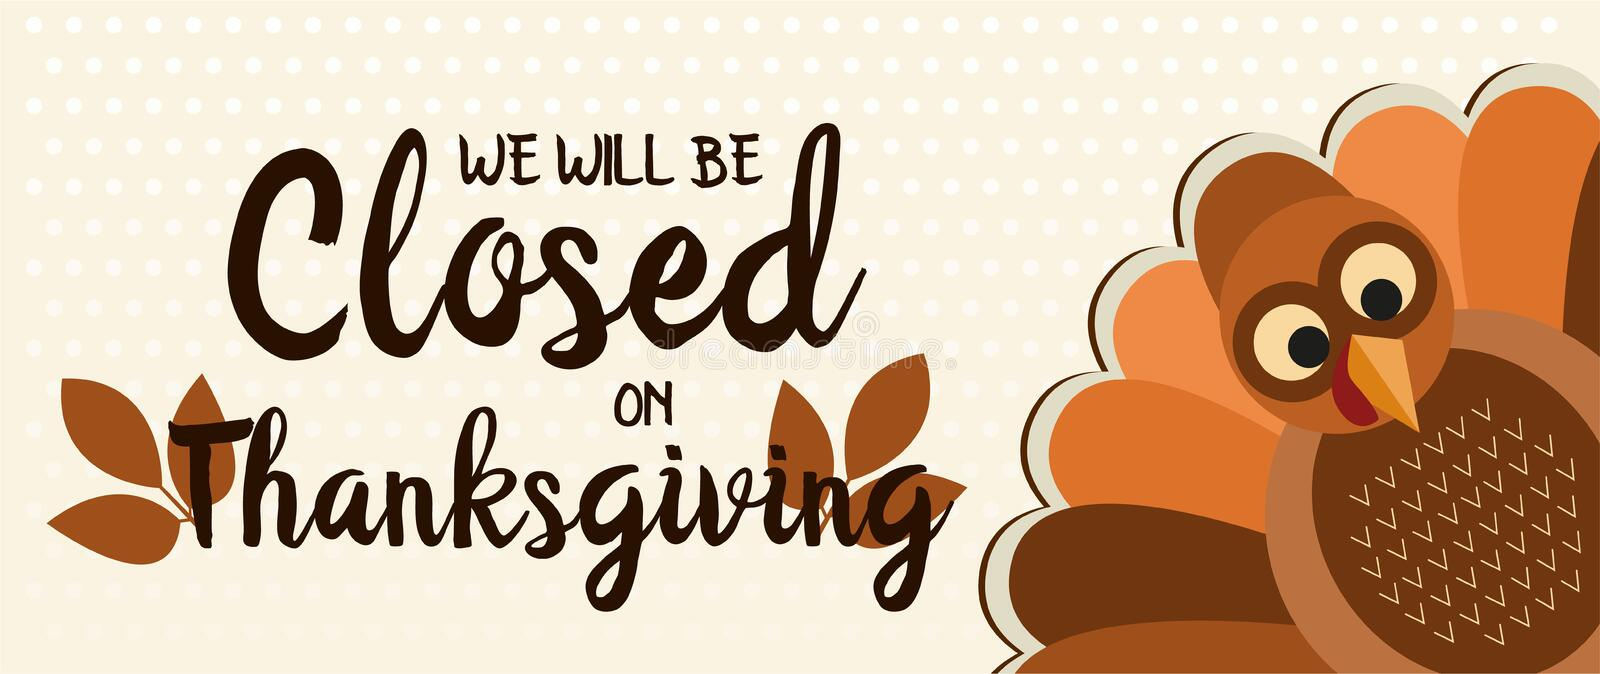 We will be closed on thanksgiving. Thanksgiving card, we will be closed background. vector illustration stock illustration